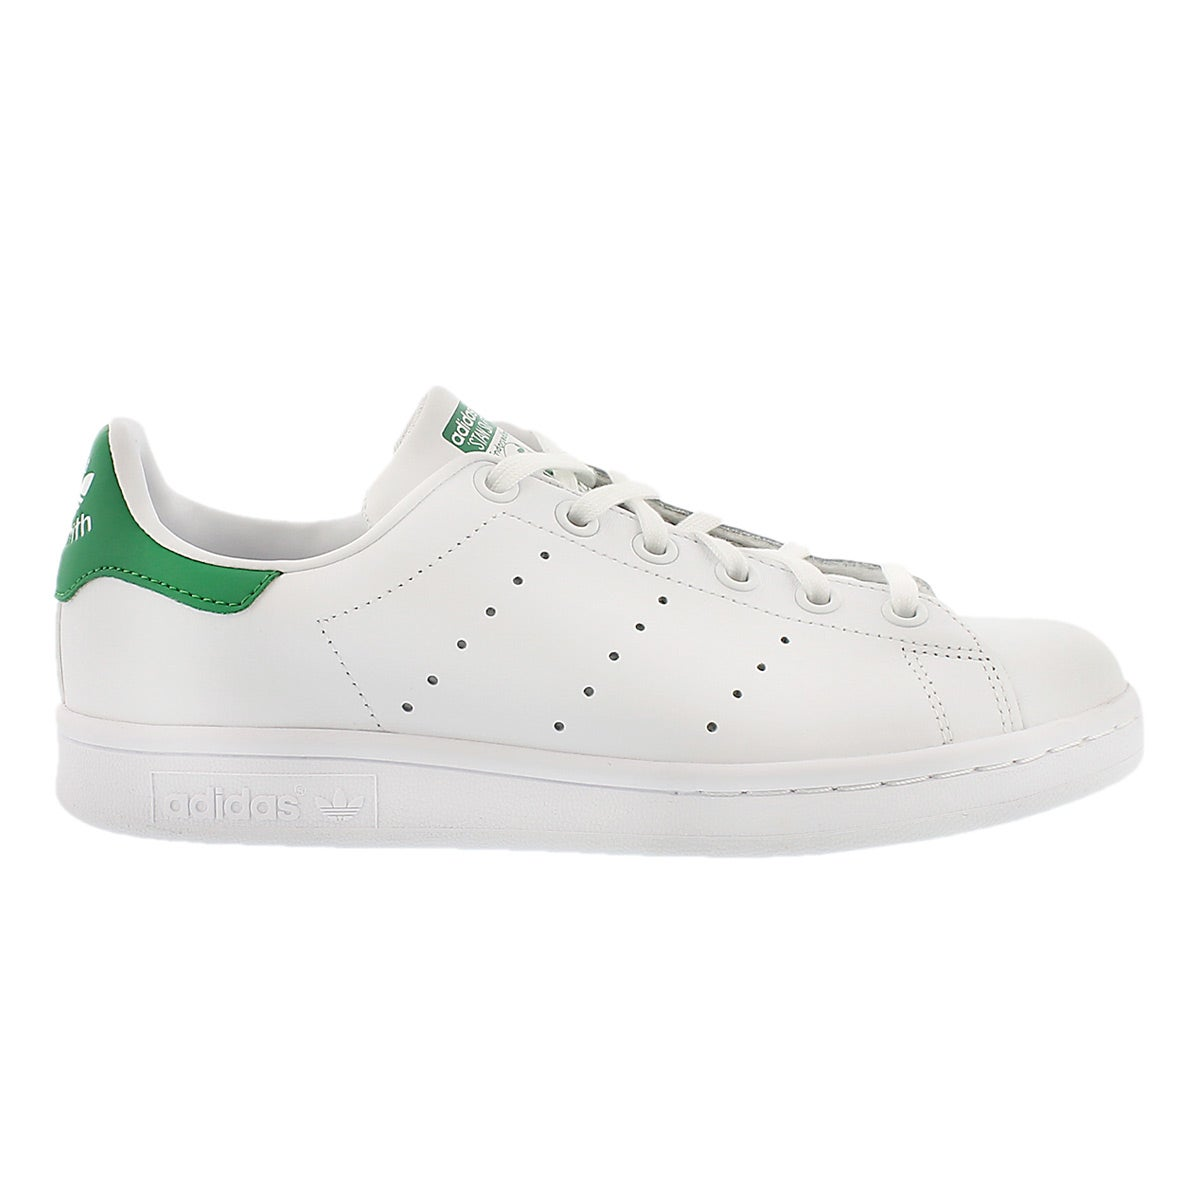 Bys Stan Smith wht/grn lace up sneaker